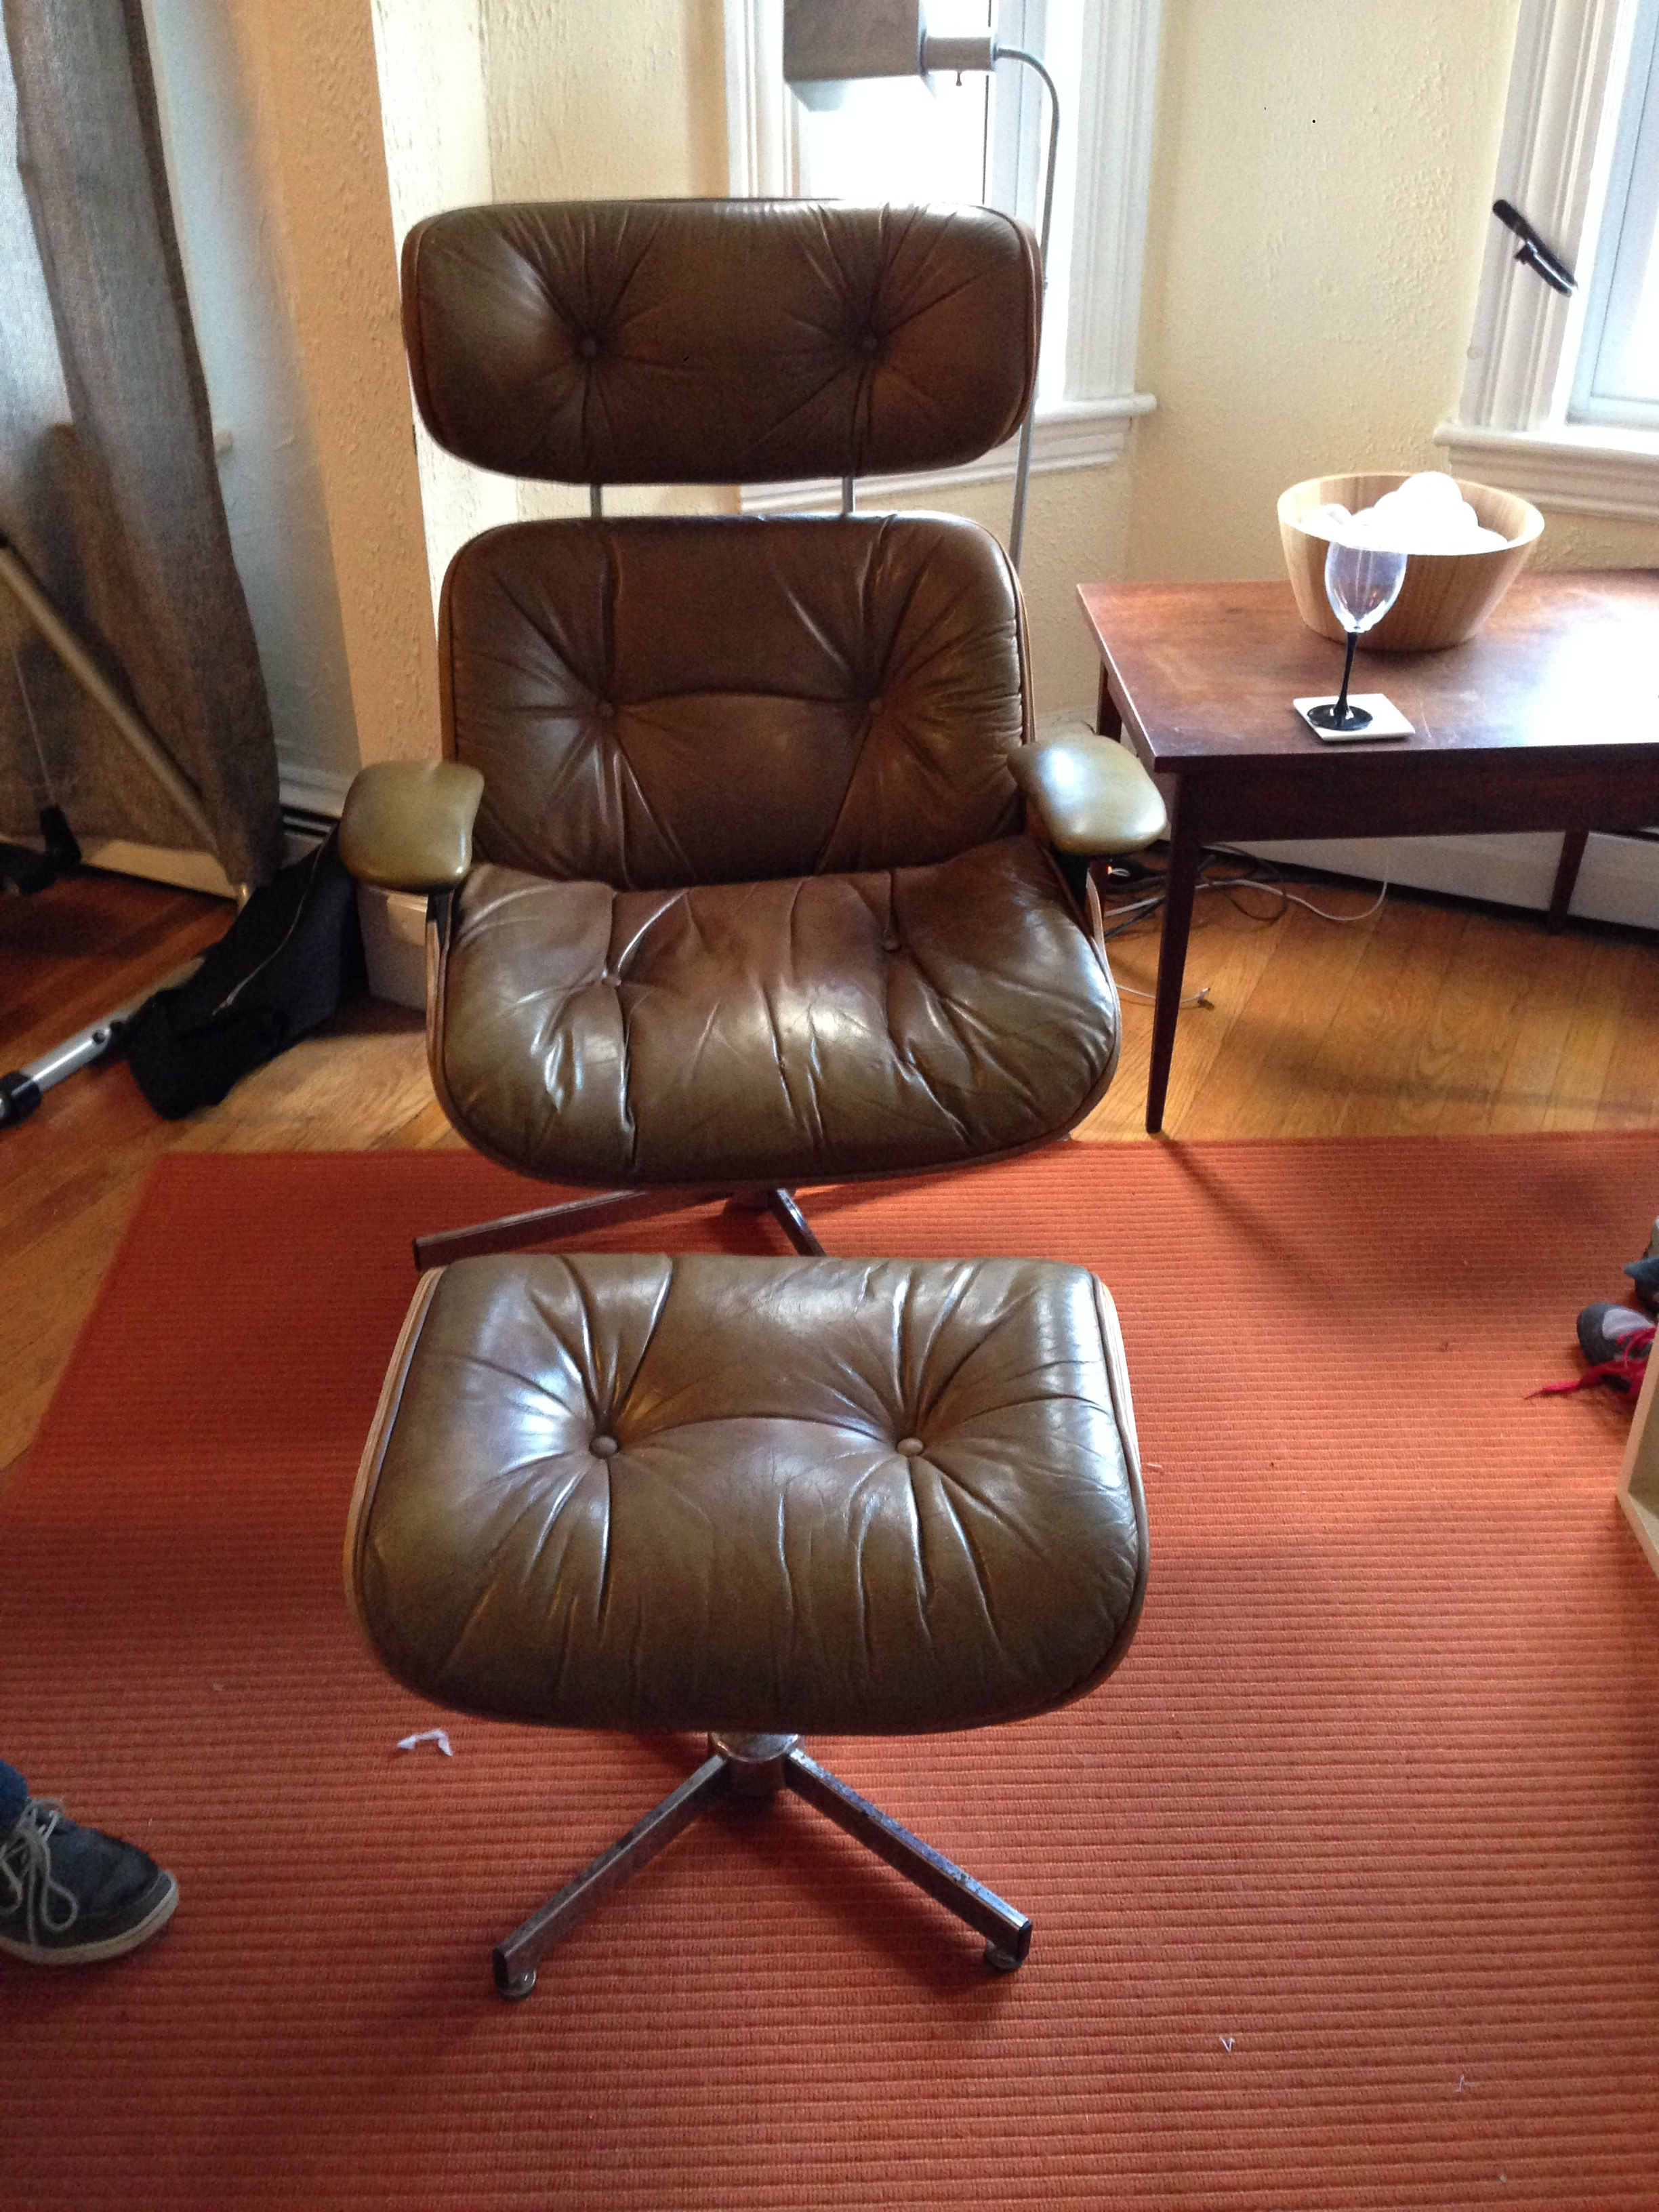 I Found 2 Of These Matching Early 60u0027s Selig Plycraft Chairs With Ottomans  On Craigslist For Super Cheap. I Have Always Wanted An Old Eames Lounge  Chair But ...